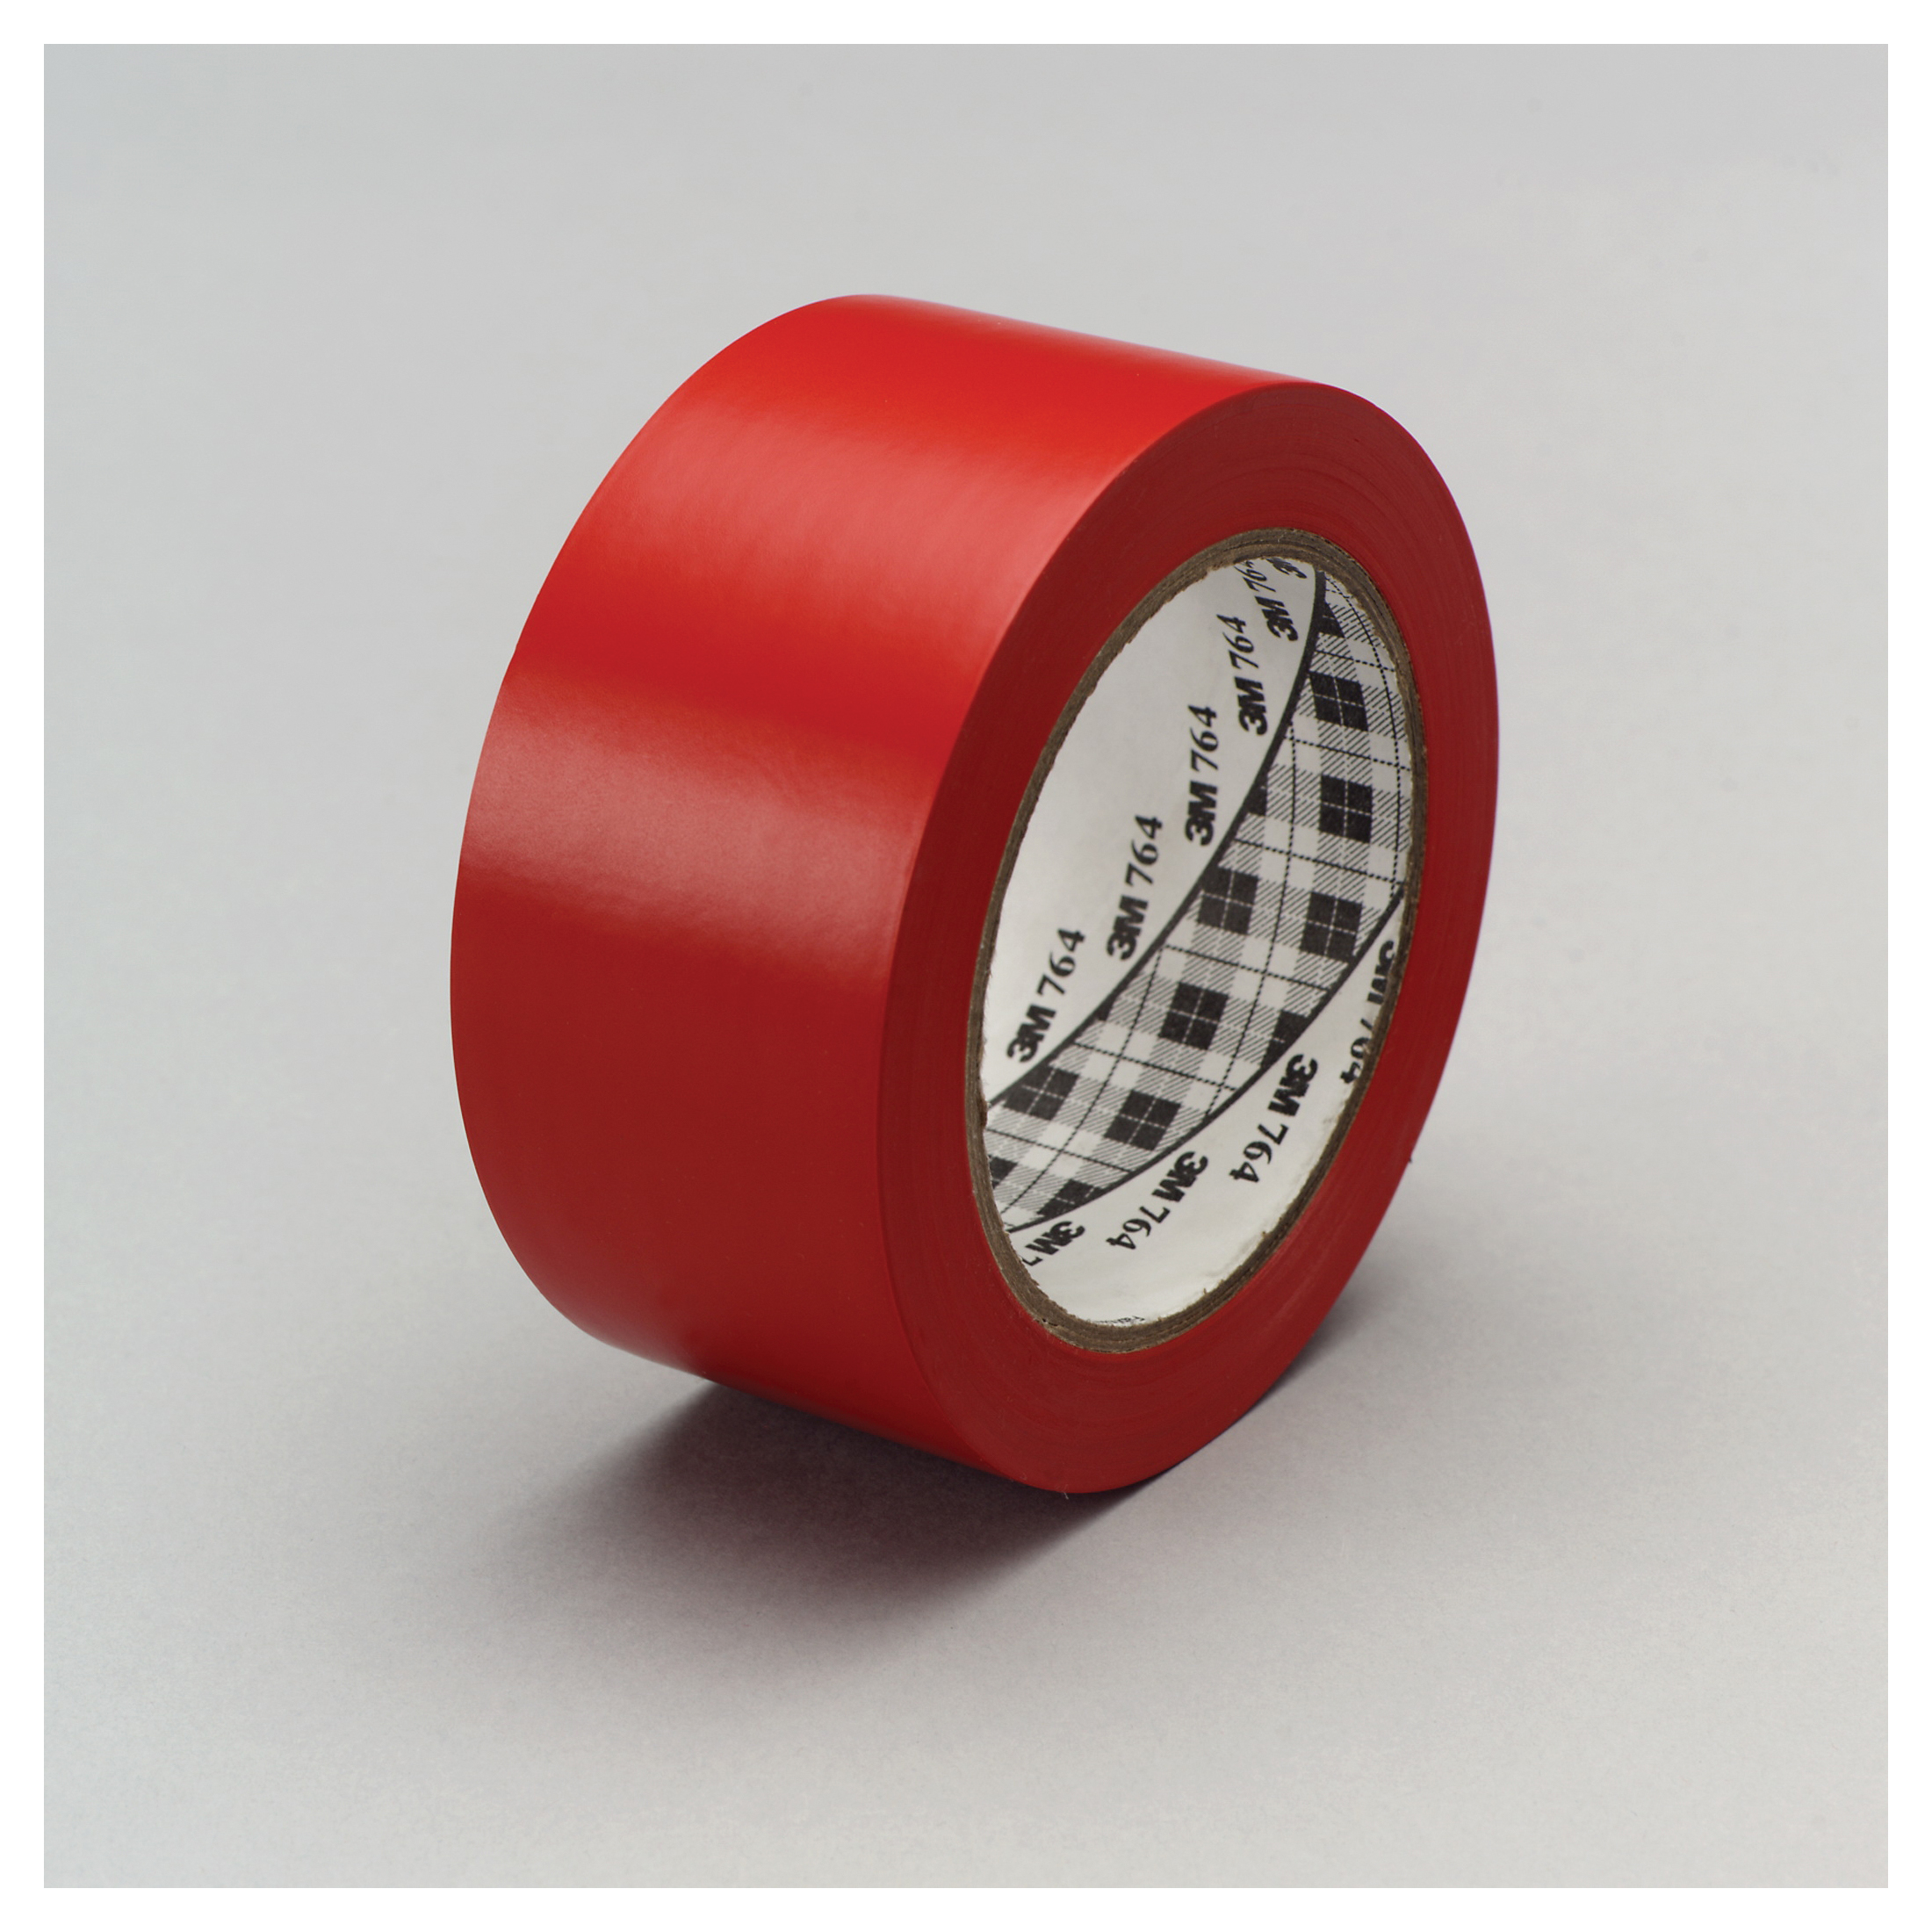 3M™ 021200-43424 General Purpose Vinyl Tape, 36 yd L x 1 in W, 5 mil THK, Rubber Adhesive, PVC Backing, Red